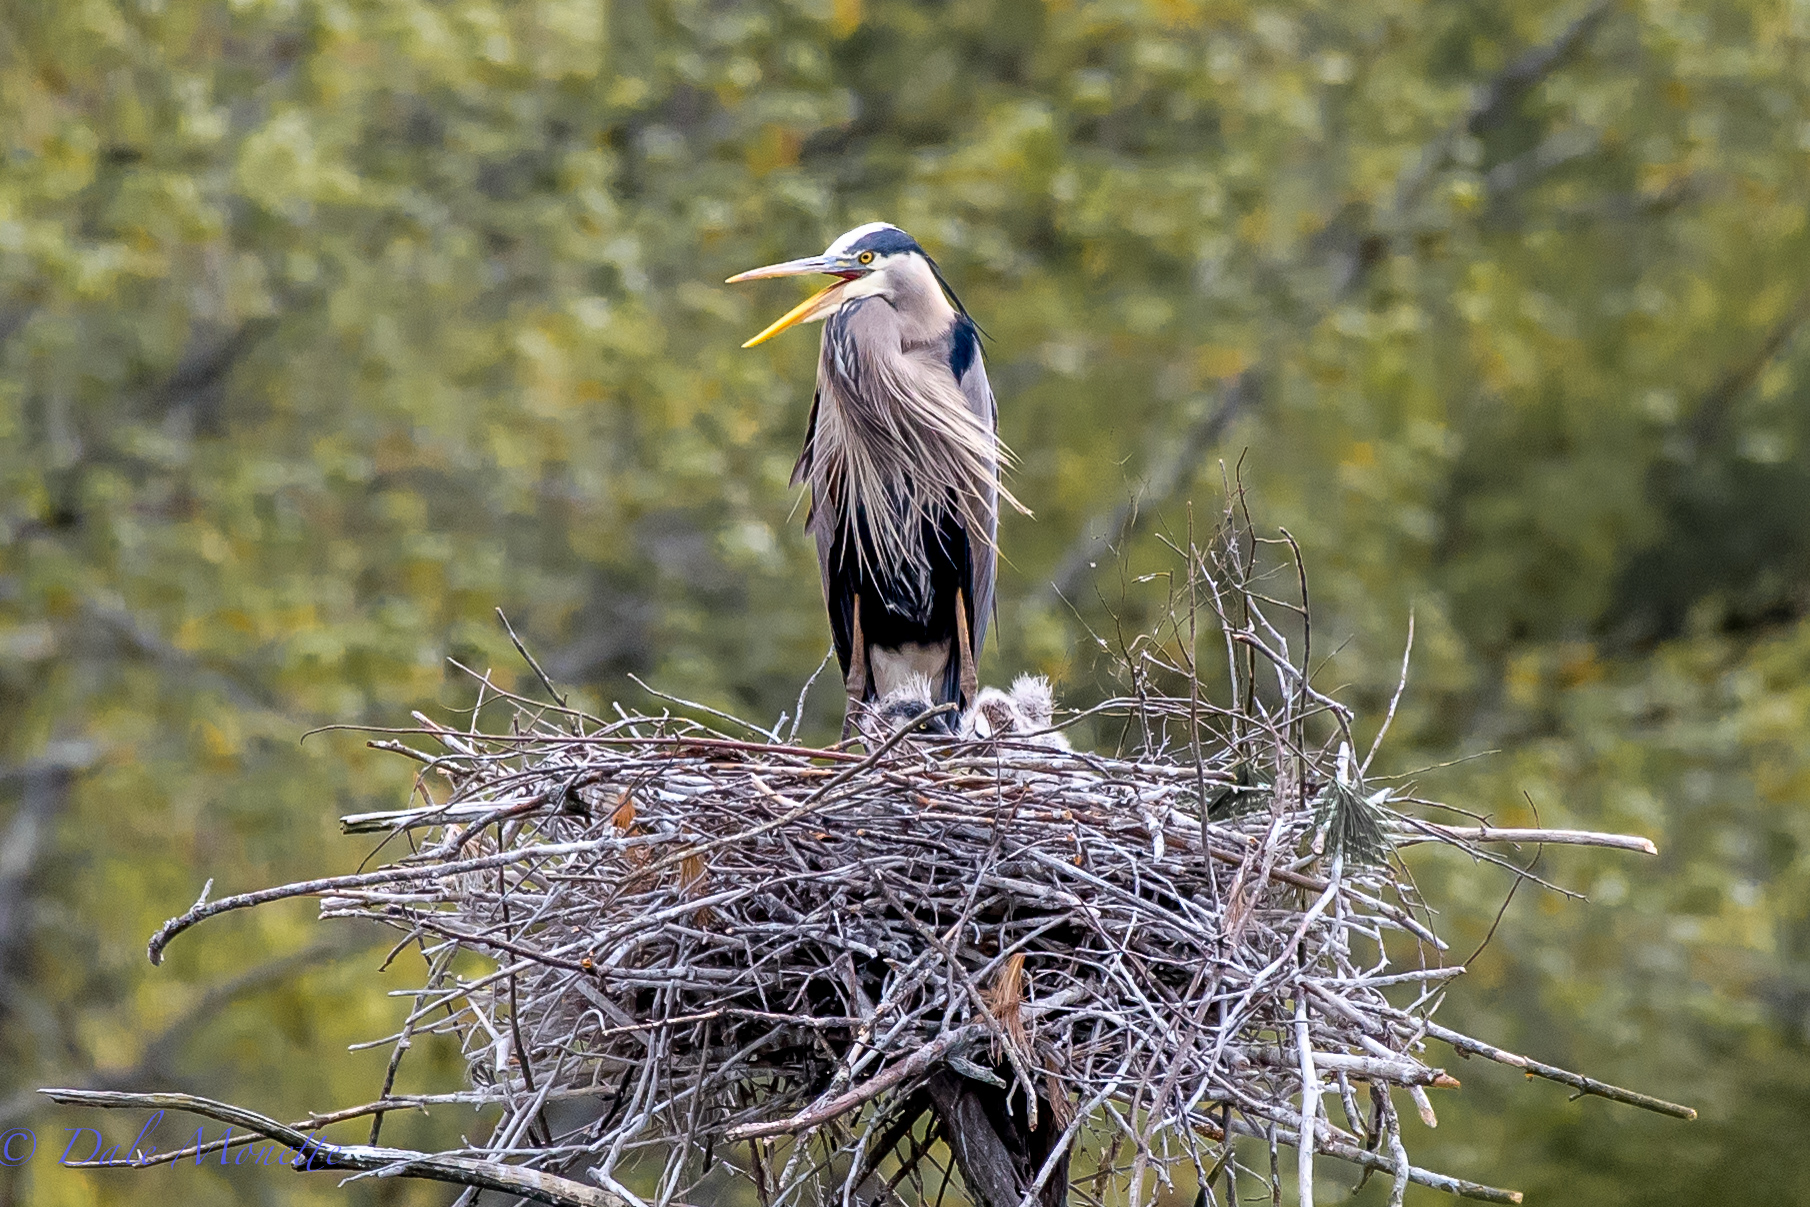 Ive been watching these herons from a far distance once a week for the last month or so because I knew there were eggs they were incubating and herons will move at the drop of a pin. Today I hiked in, crept up to where I could see through the trees and there they were ! 3 scruffy little great blue herons...